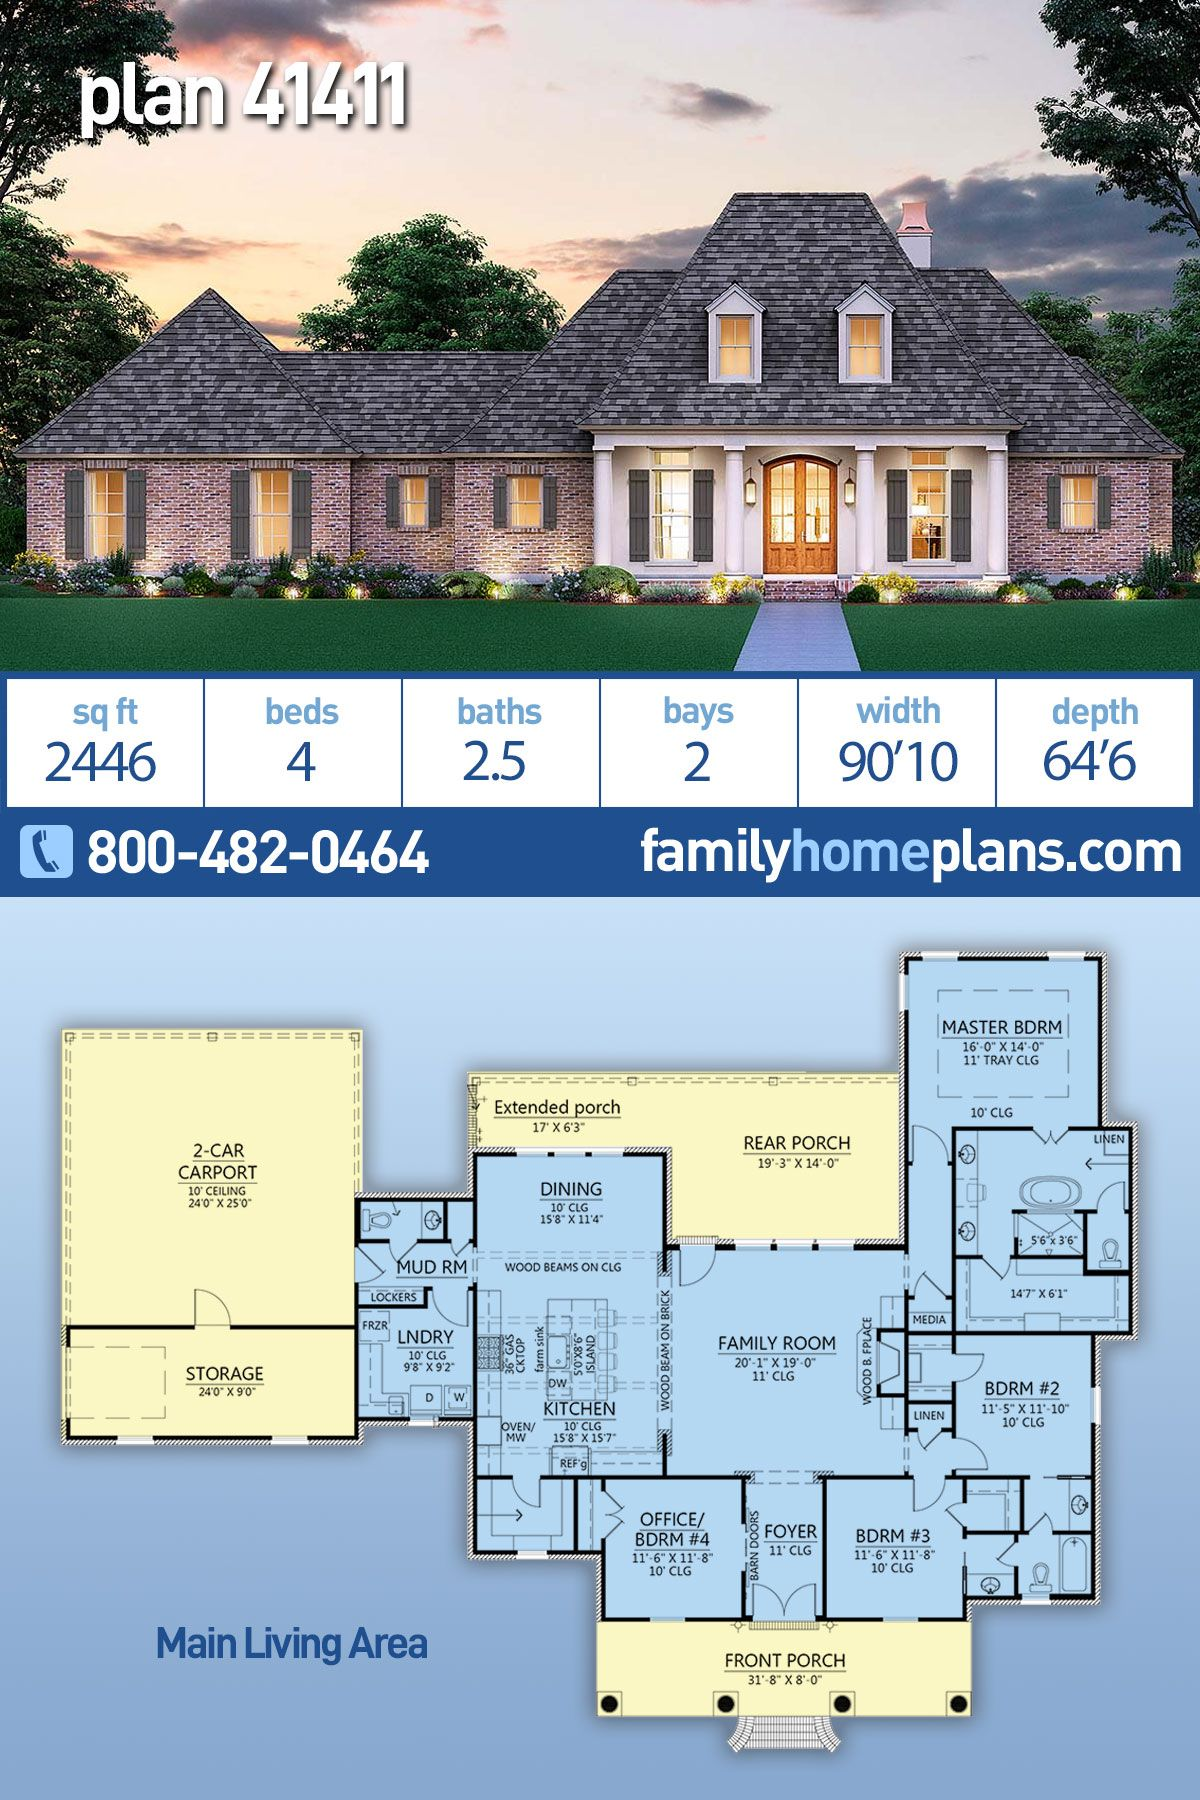 Traditional Style House Plan 41411 With 4 Bed 3 Bath 2 Car Garage Acadian House Plans House Plans Family House Plans